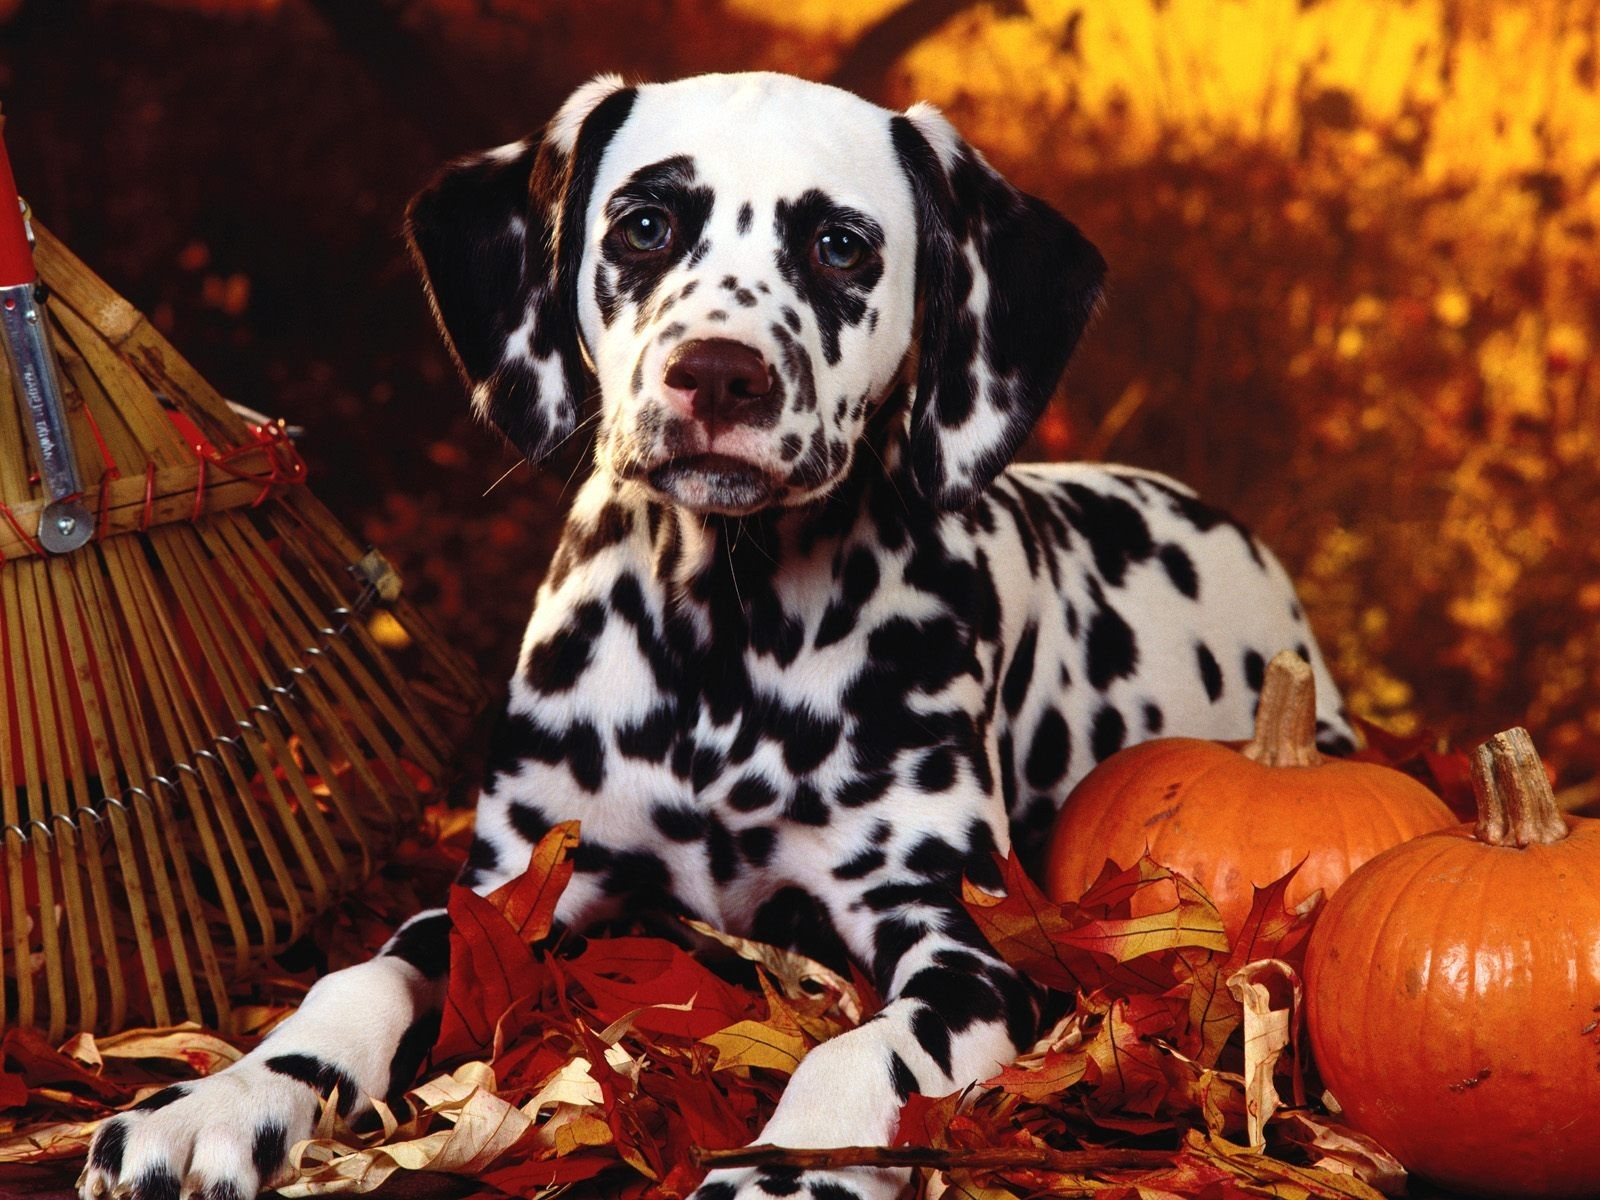 Fall Pumpkin Computer Wallpaper 30 Fonds D 233 Cran Chiens Et Chiots Animaux Fonds D